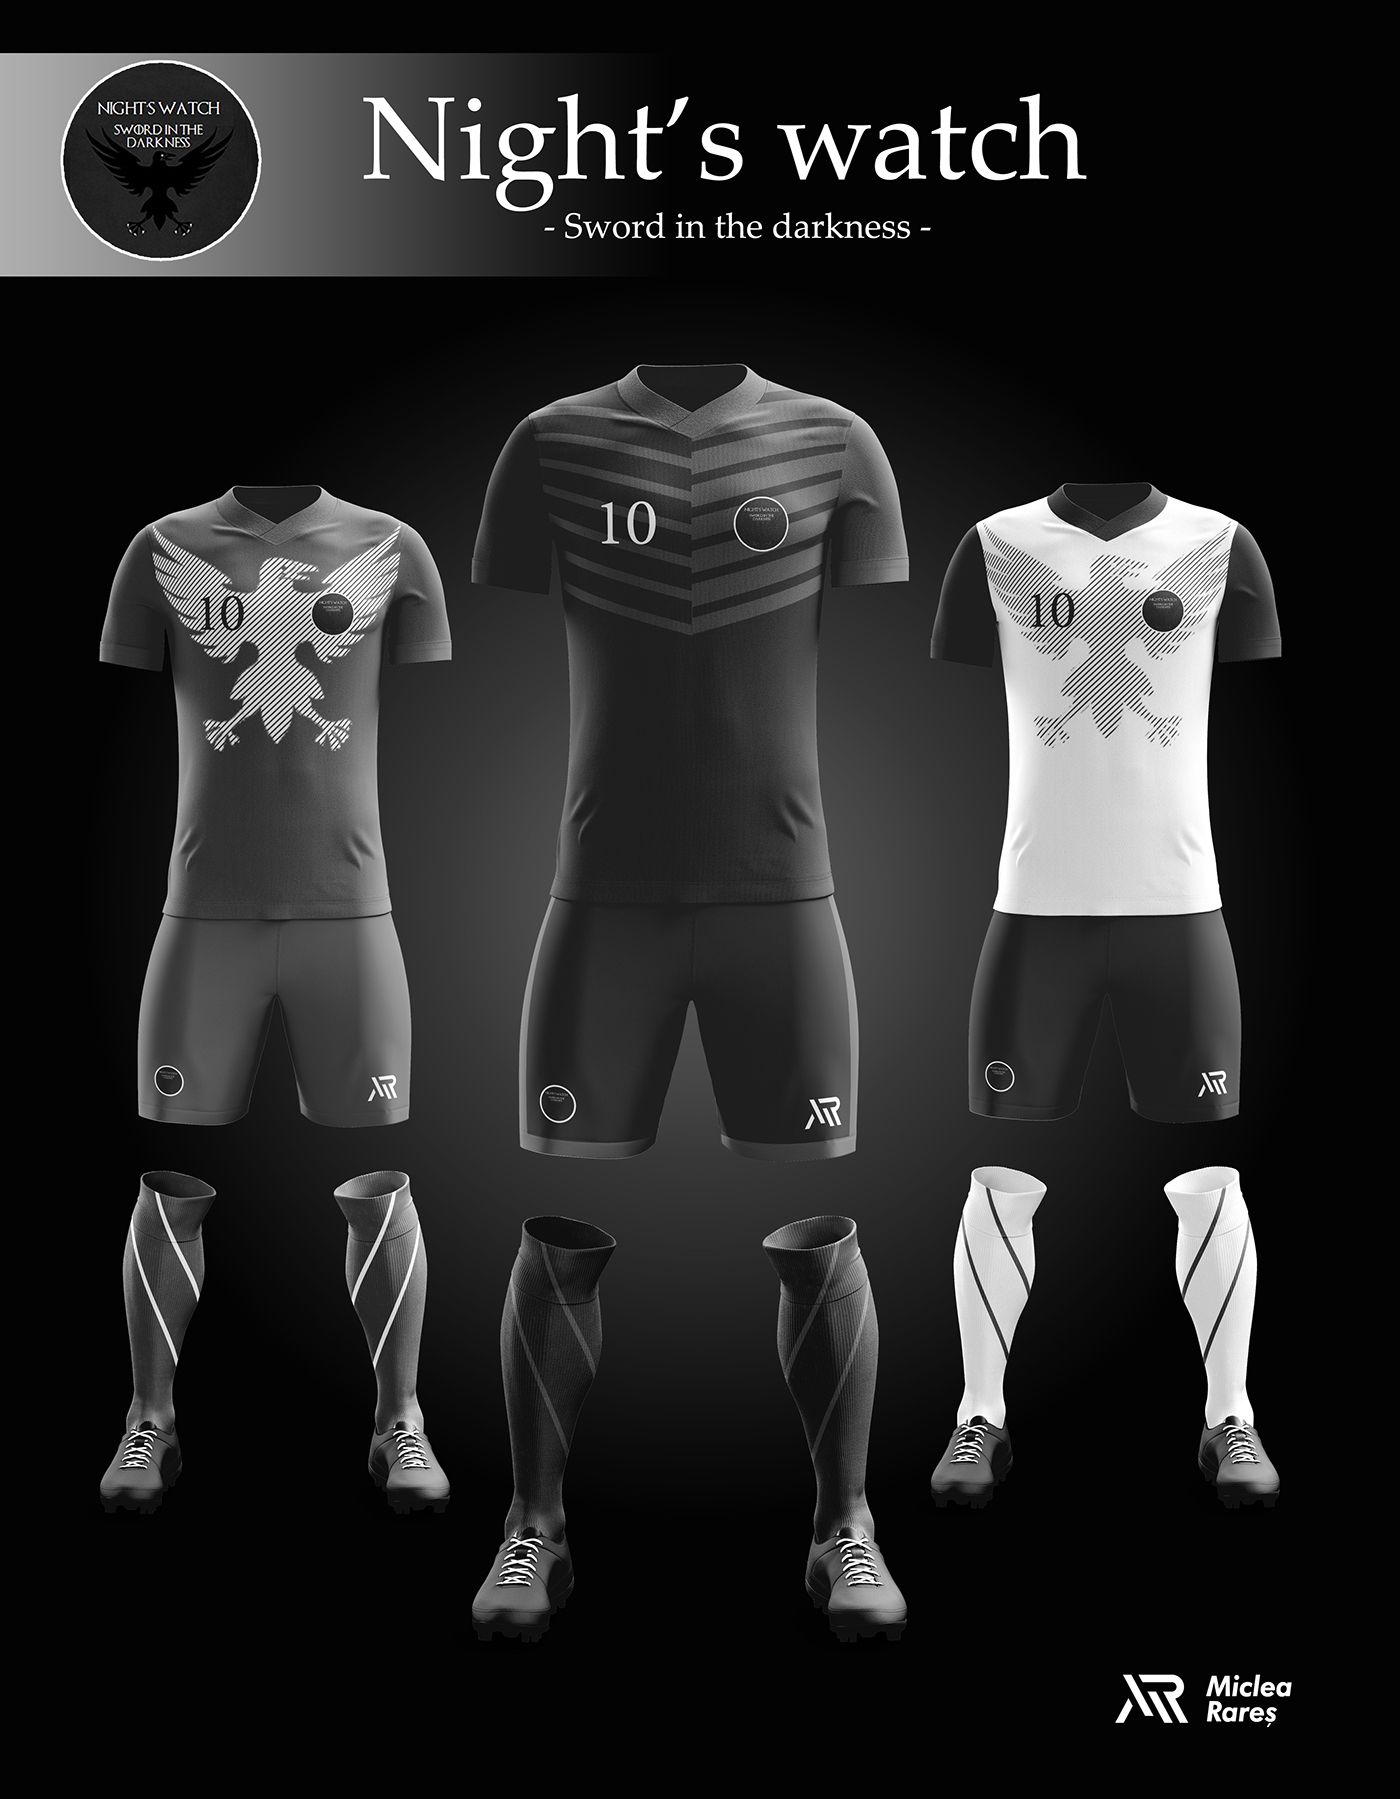 bf4e2cffc17cc Concept - Game of Thrones football kits on Behance